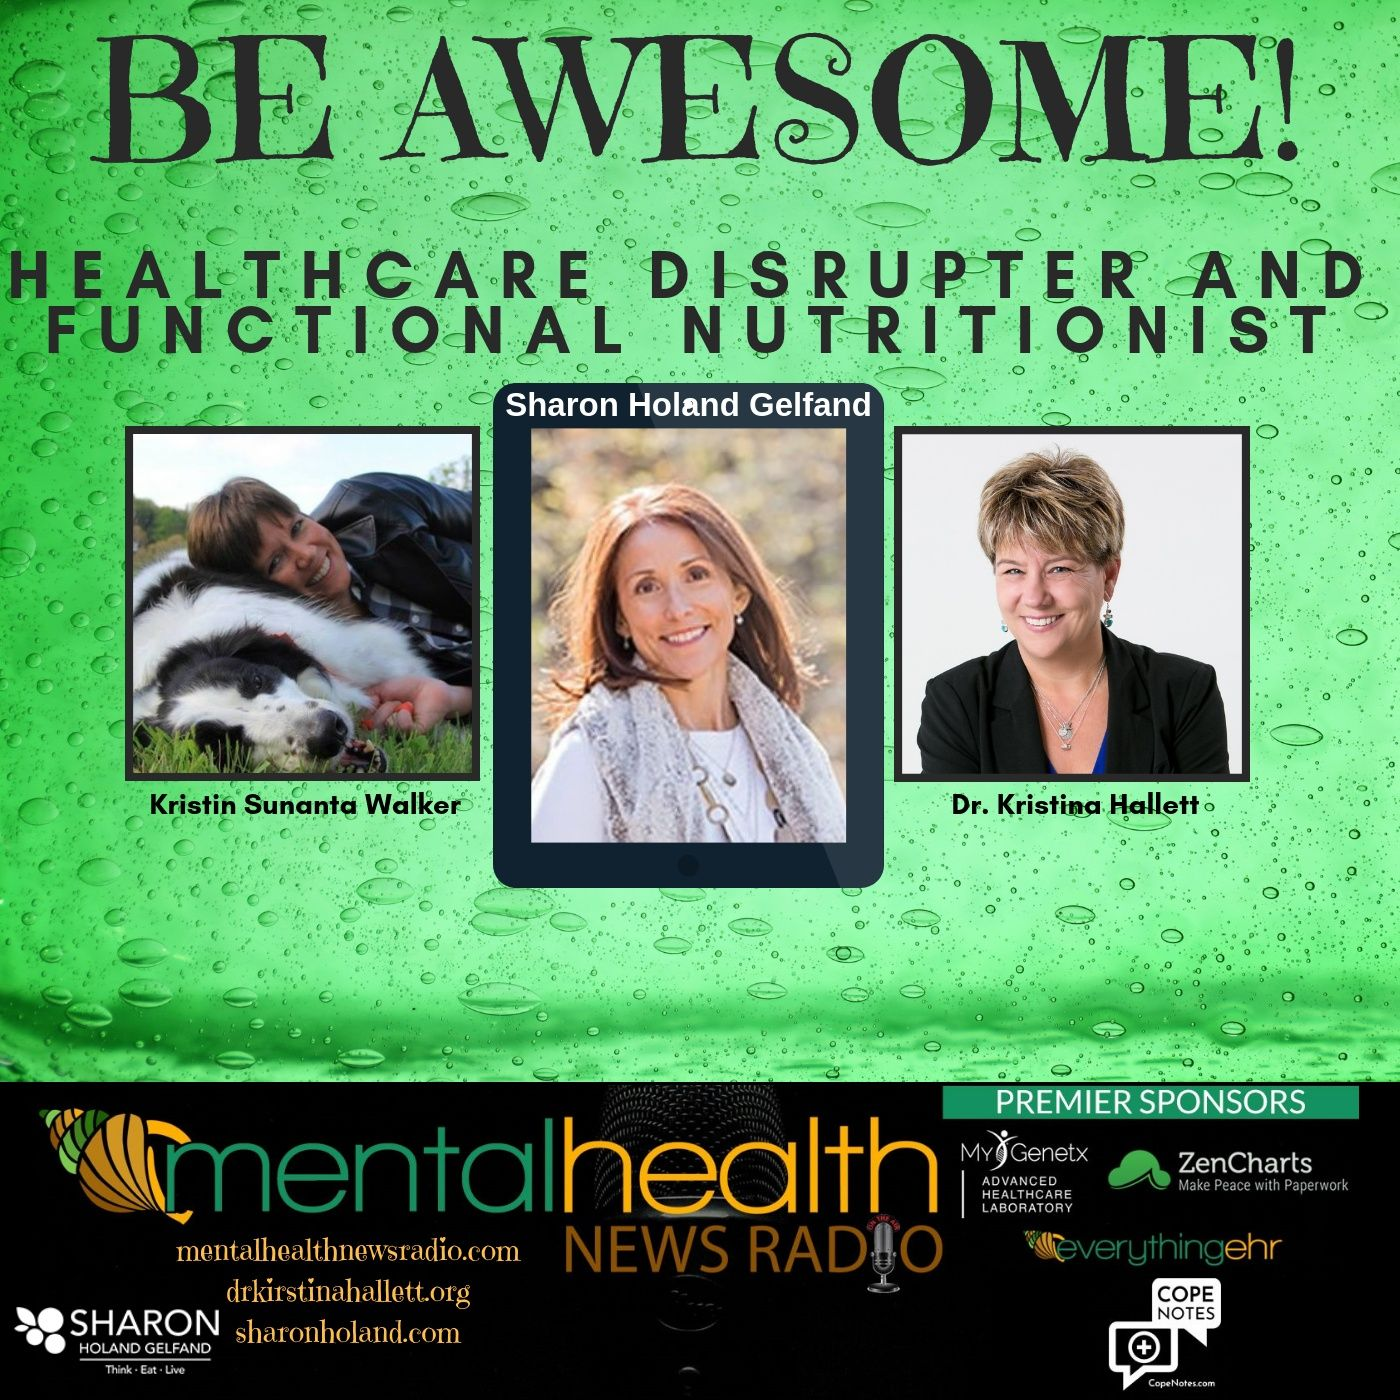 Mental Health News Radio - Be Awesome: Healthcare Disrupter and Functional Nutritionist Sharon Holand Gelfand